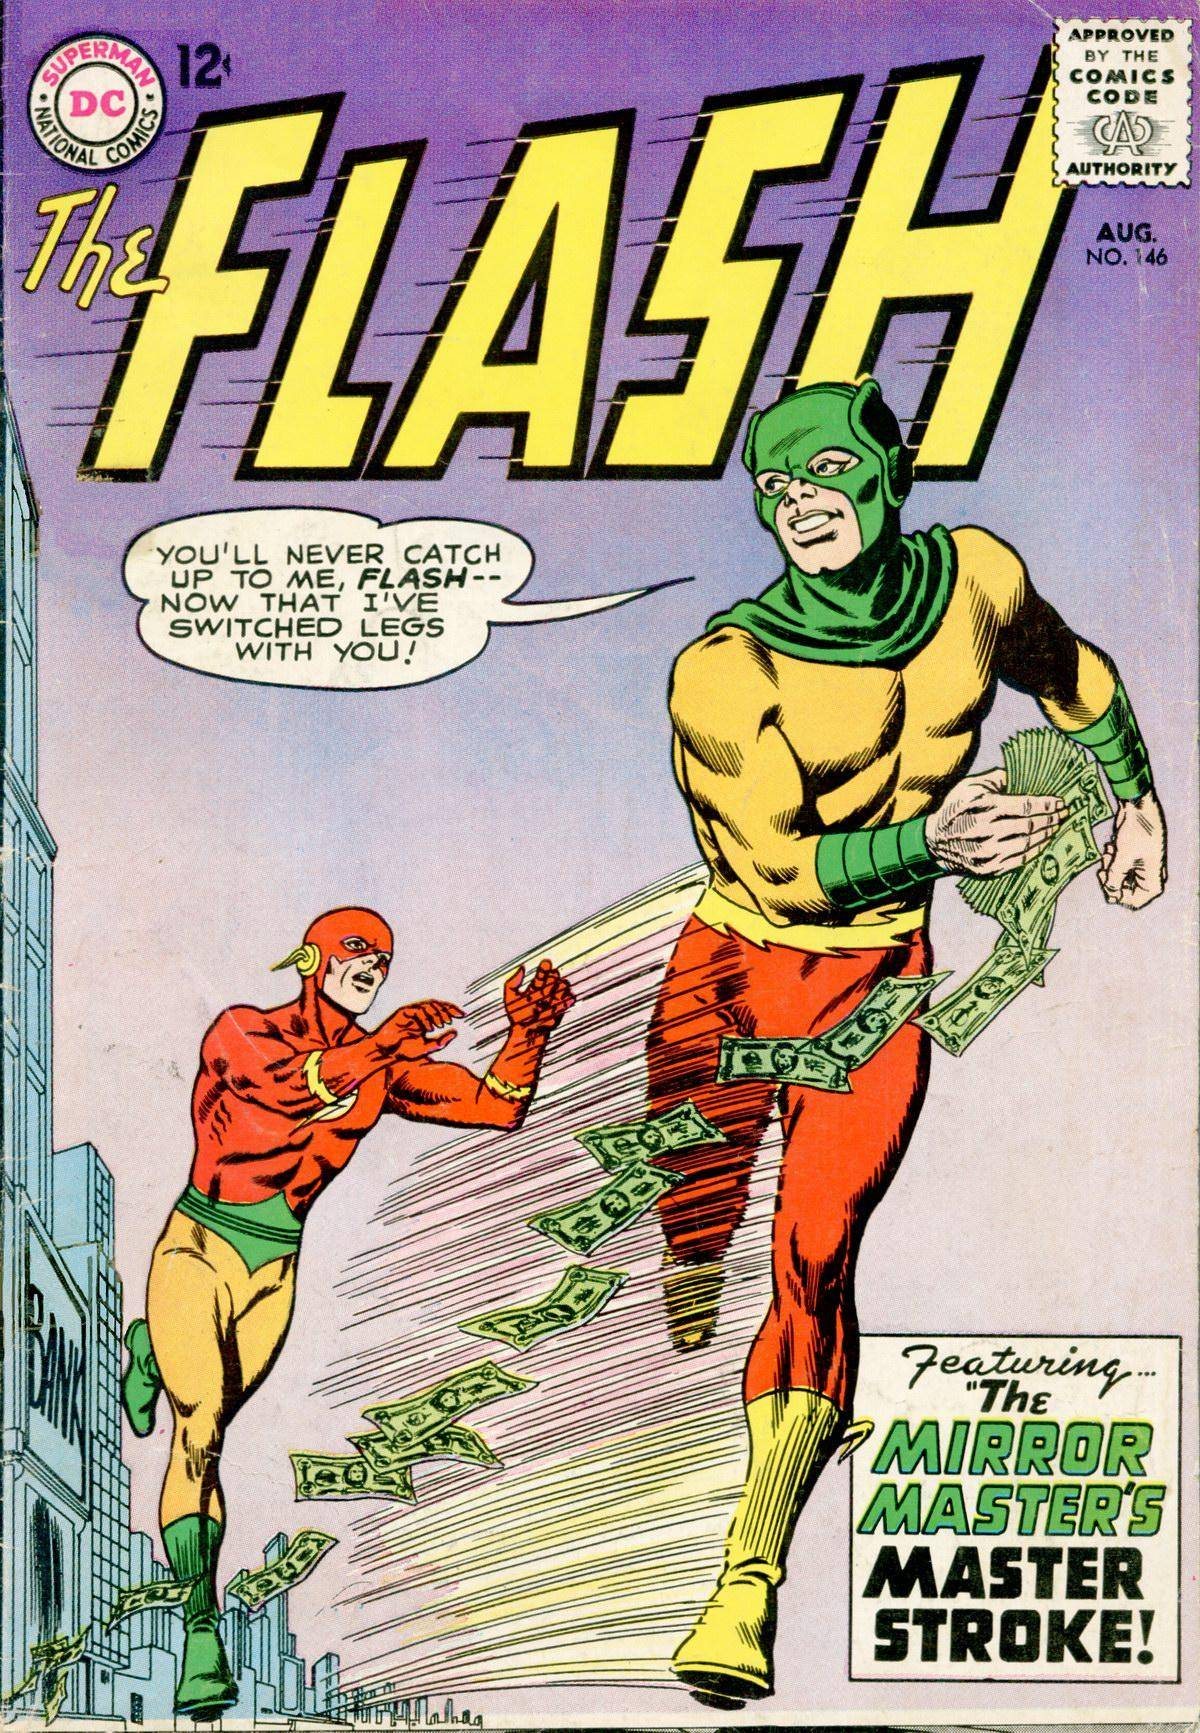 Flash [1964-08] 146 ctc